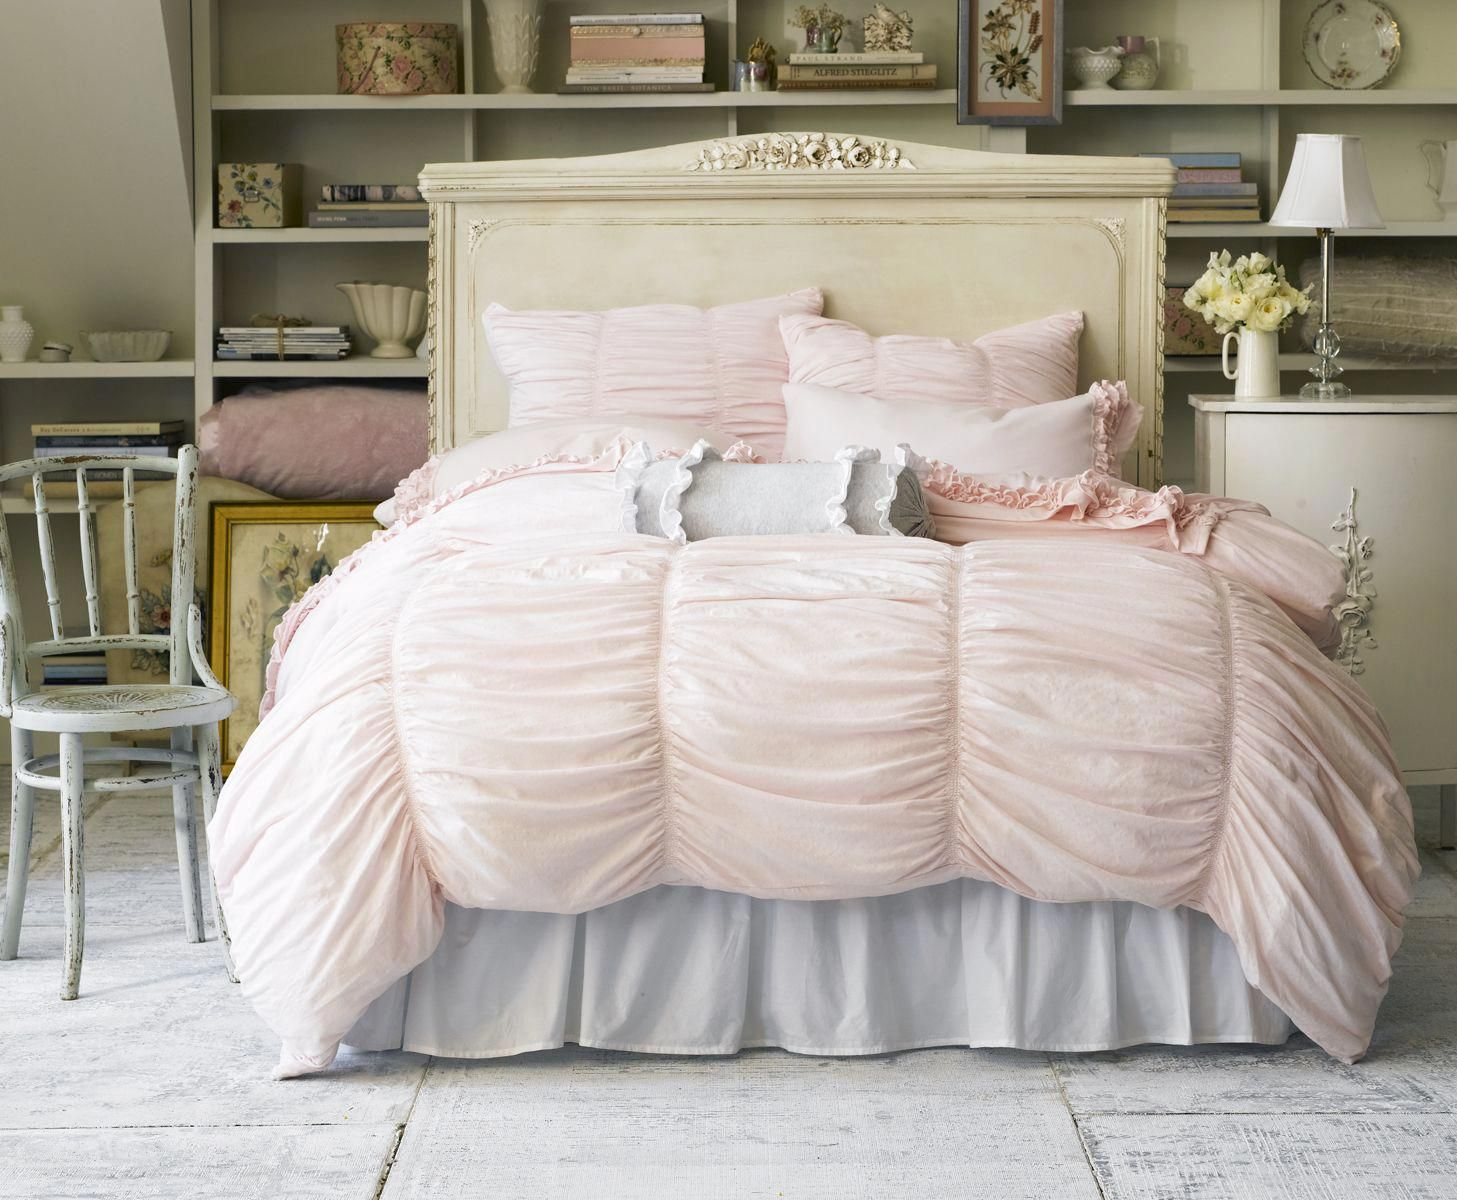 Be Unique With Your Shabby Chic Bedding